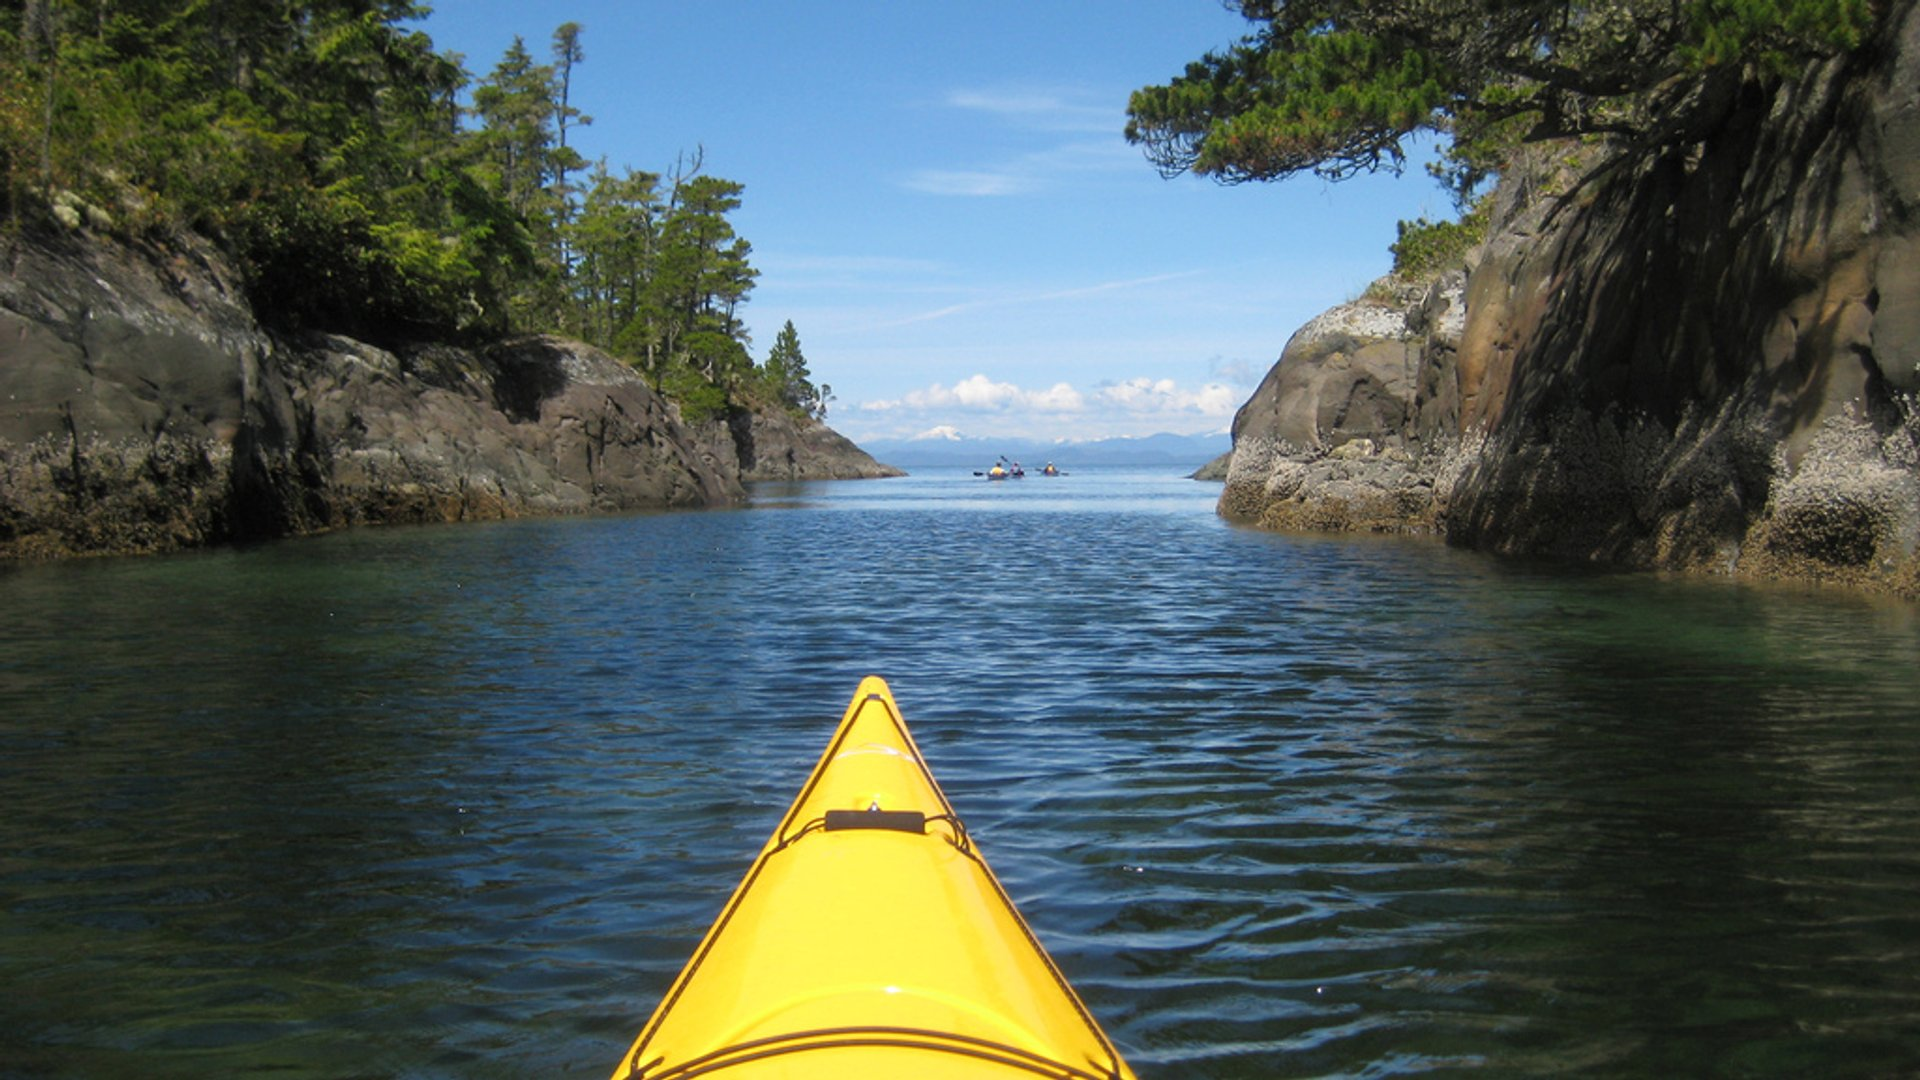 Kayaking through Johnstone Strait 2020